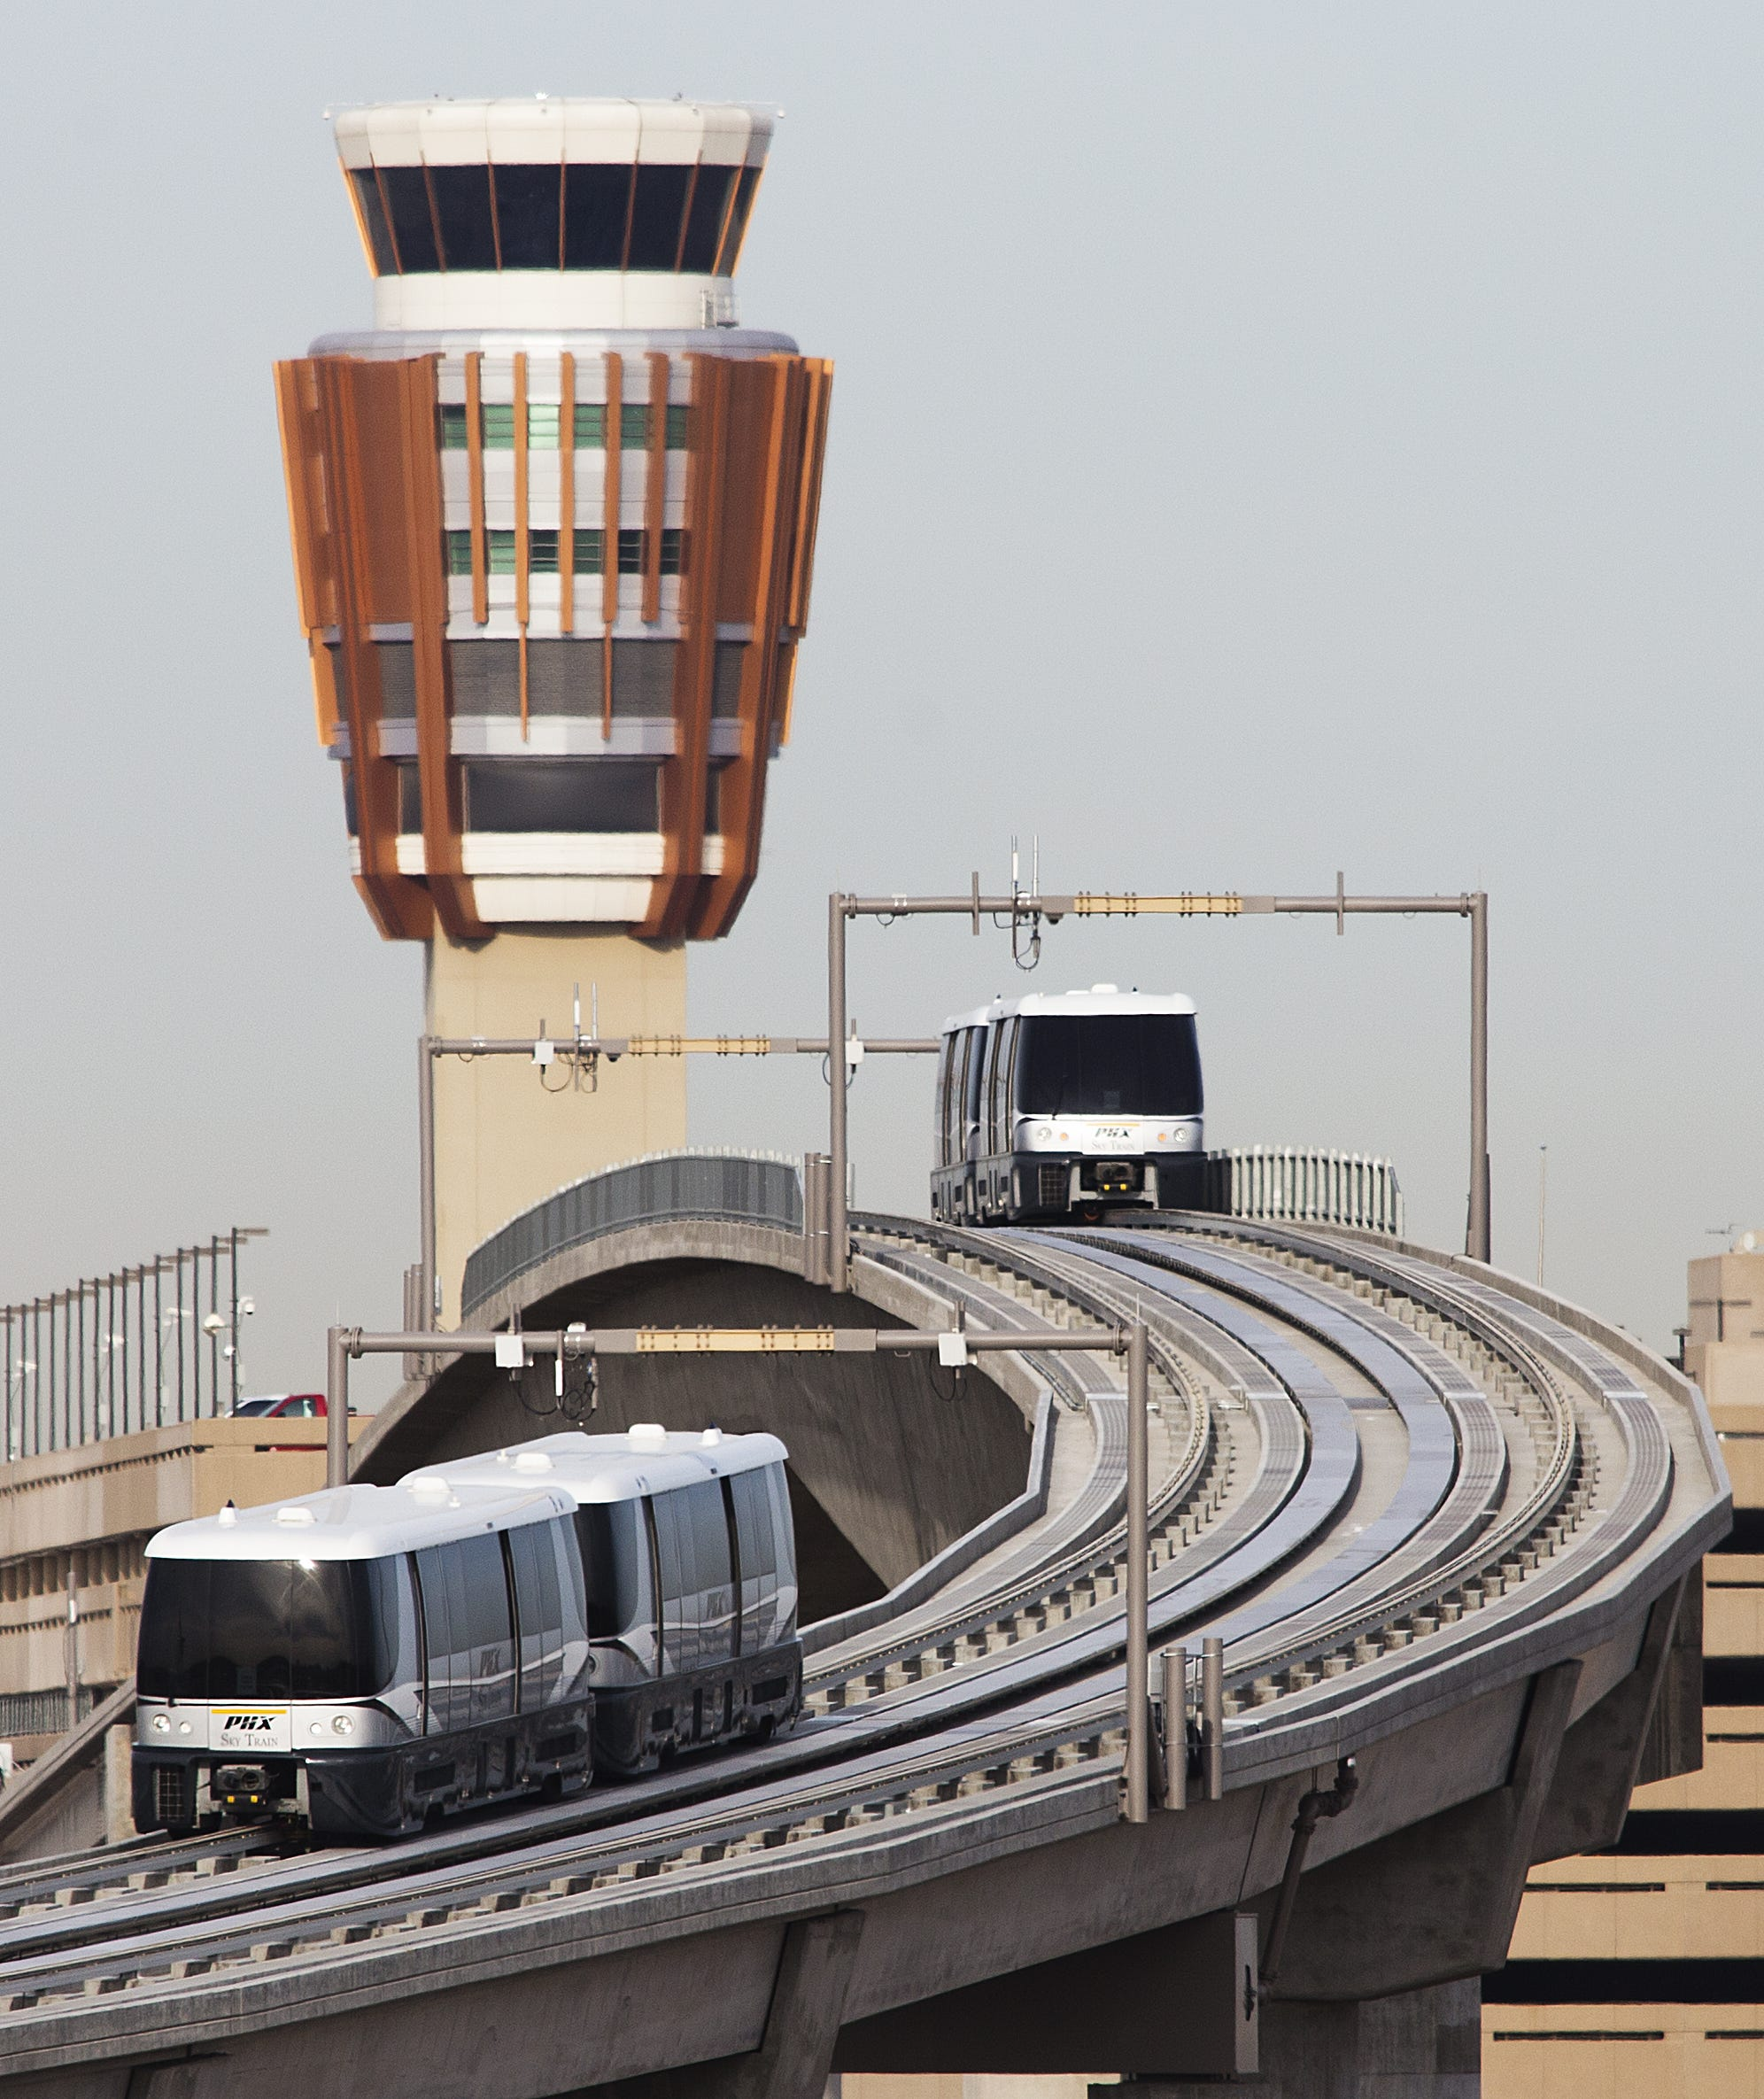 The automated PHX Sky Train system now connects the 44th Street and Washington Street light-rail stop to Terminal 3 and Terminal 4.